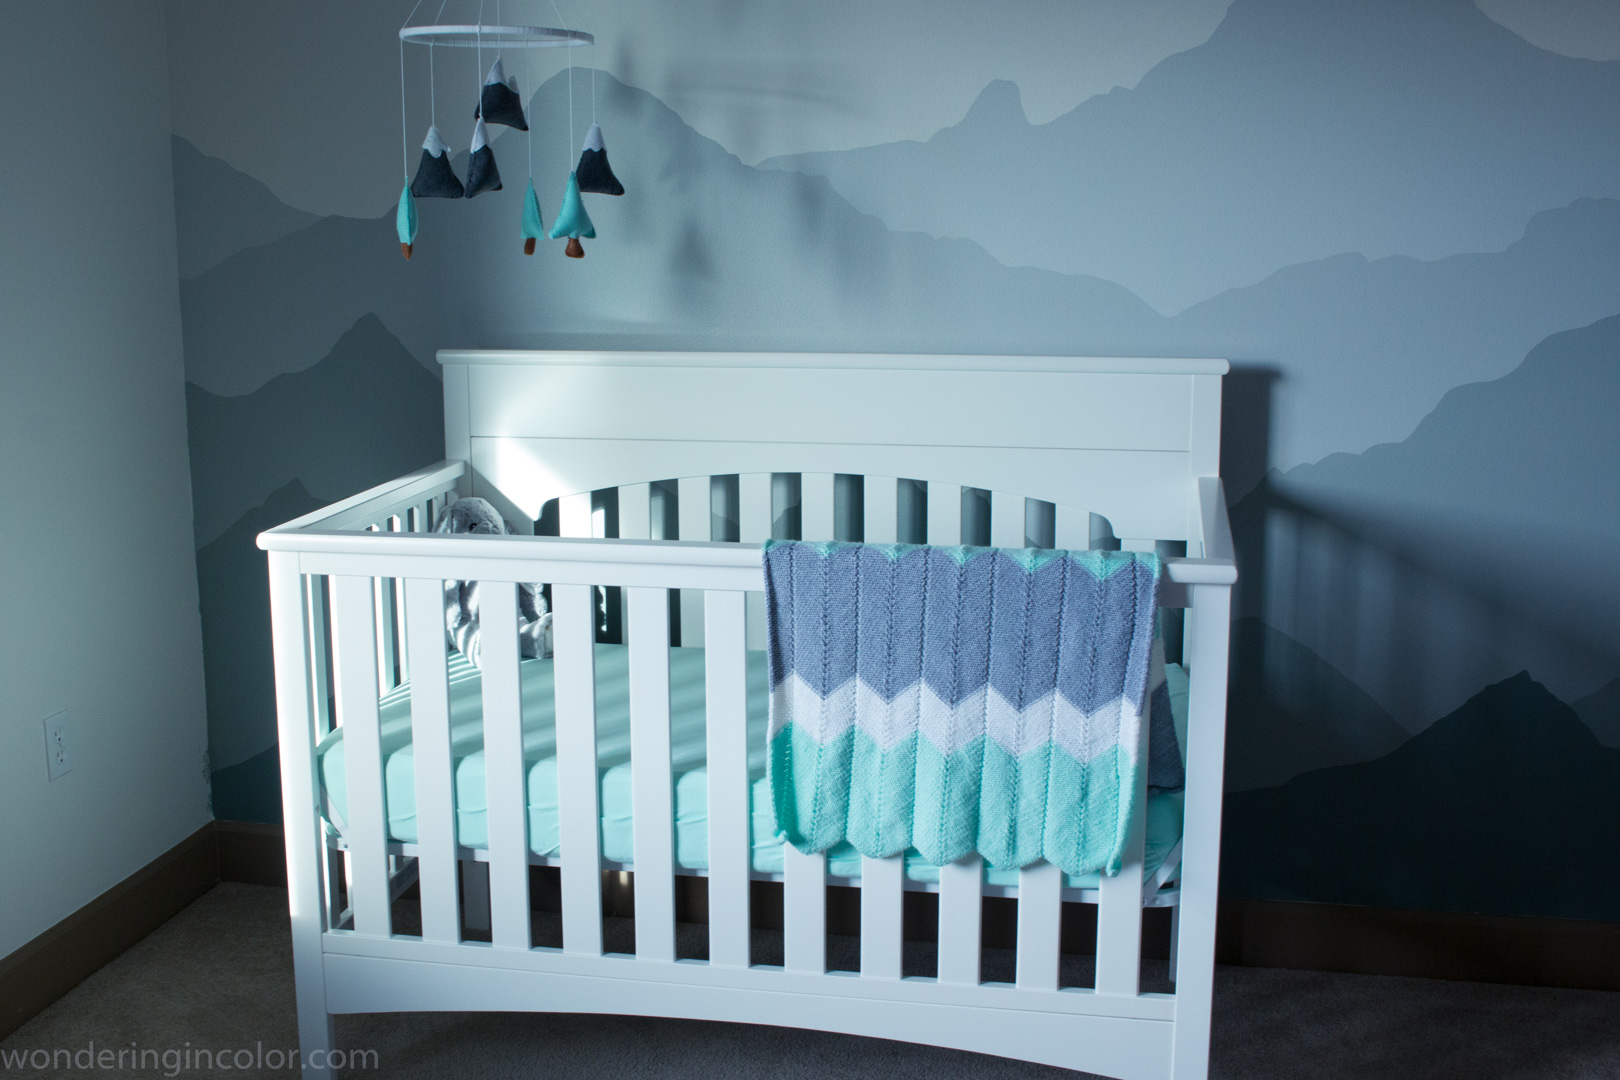 Pacific-northwest-inspired-nursery-styling (2 of 14).jpg